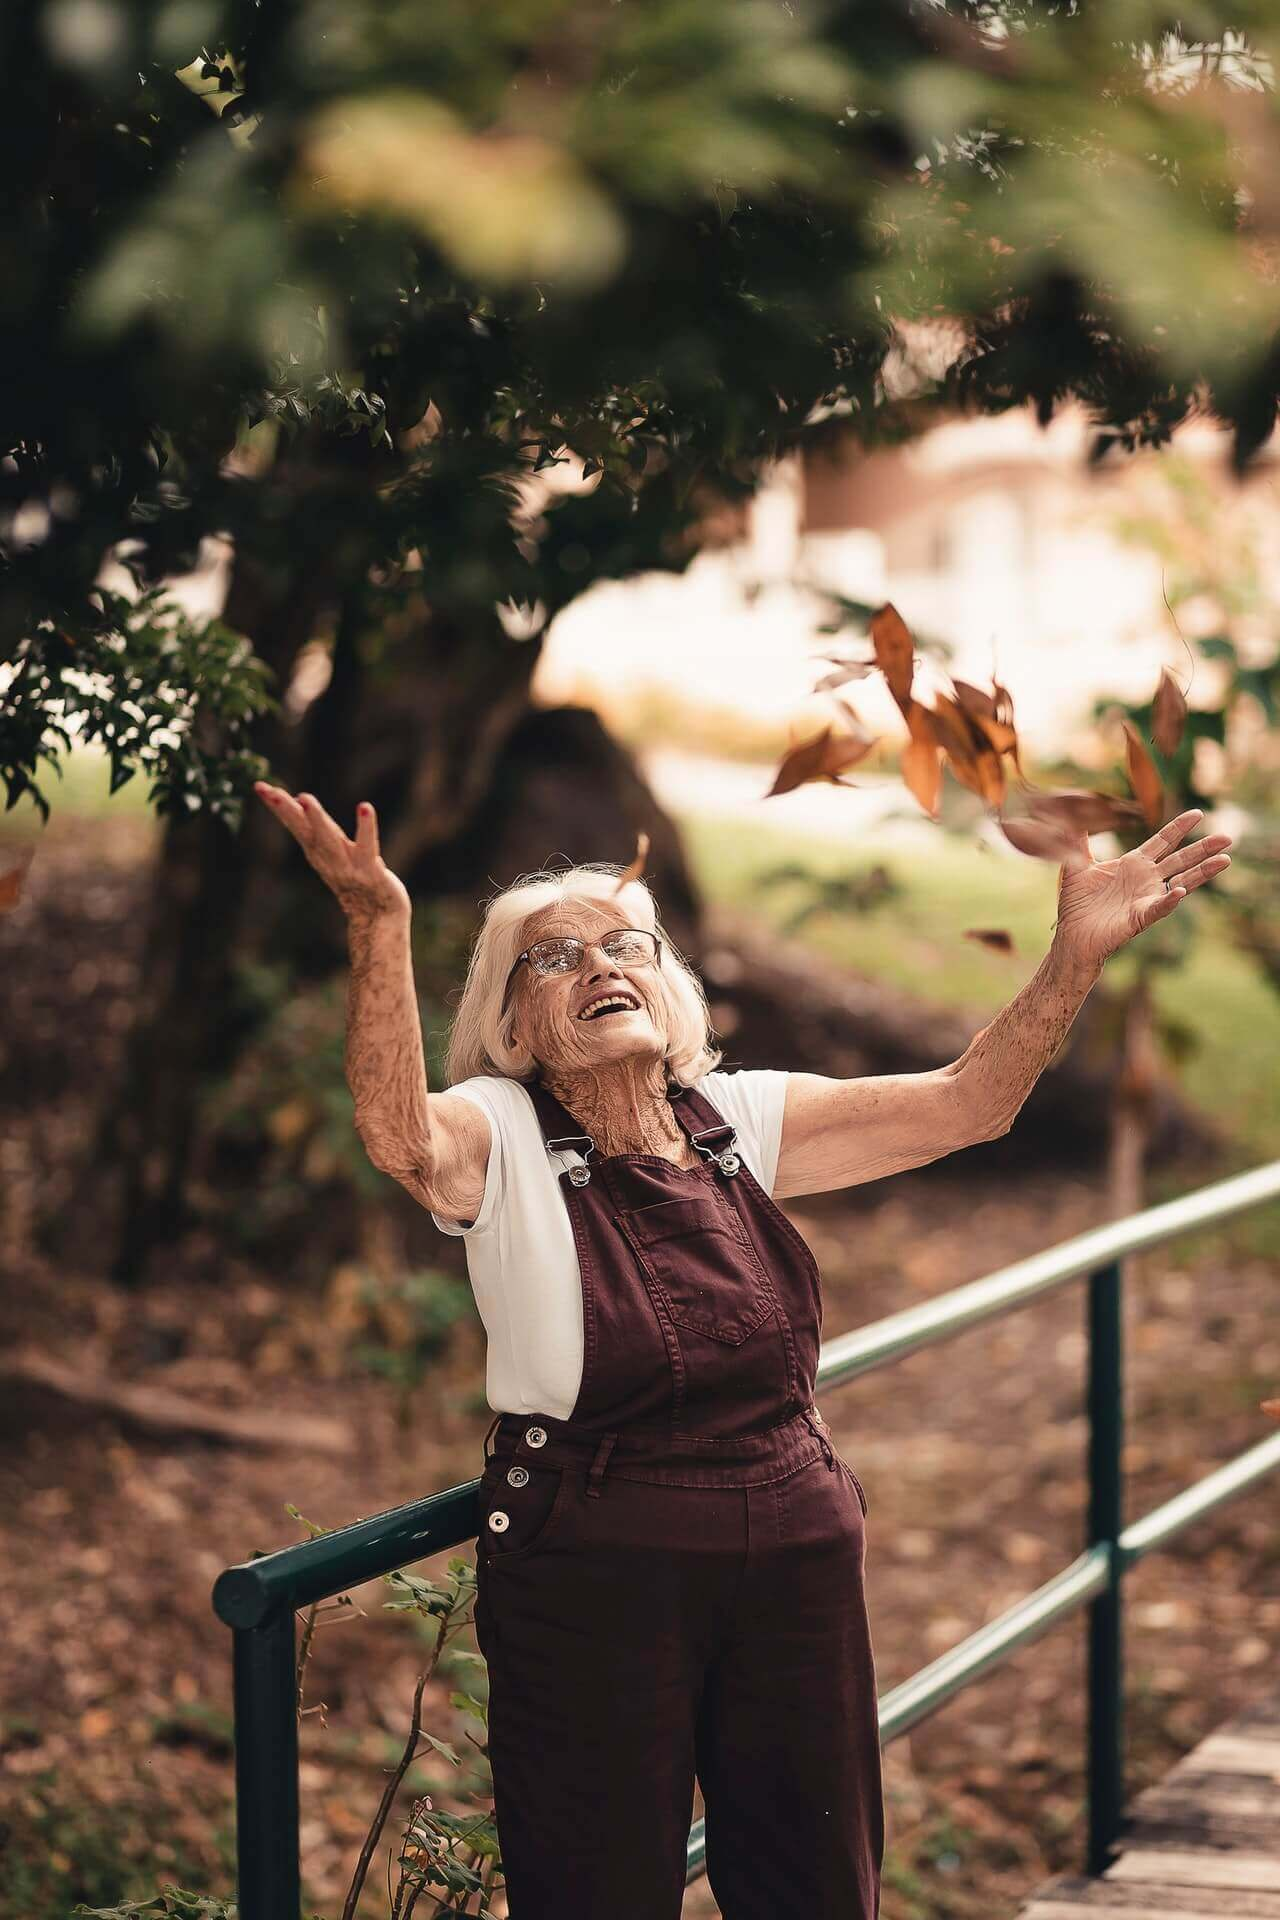 Happy old lady with brown overalls throwing brown leaves in the air in a park.